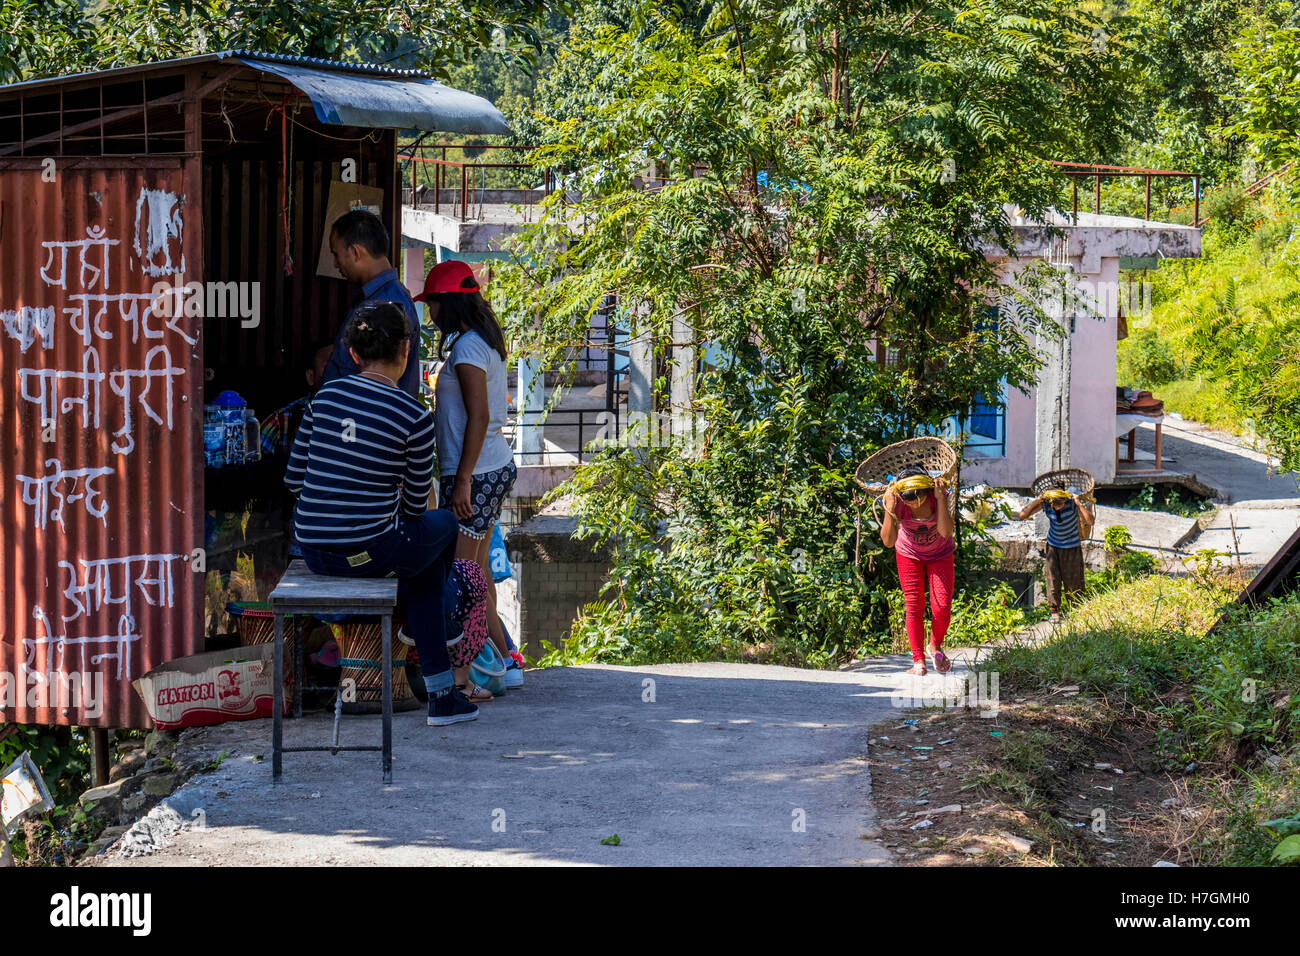 Workers carrying goods to the shops, while others sell goods from the small units in Pokhara Nepal - Stock Image